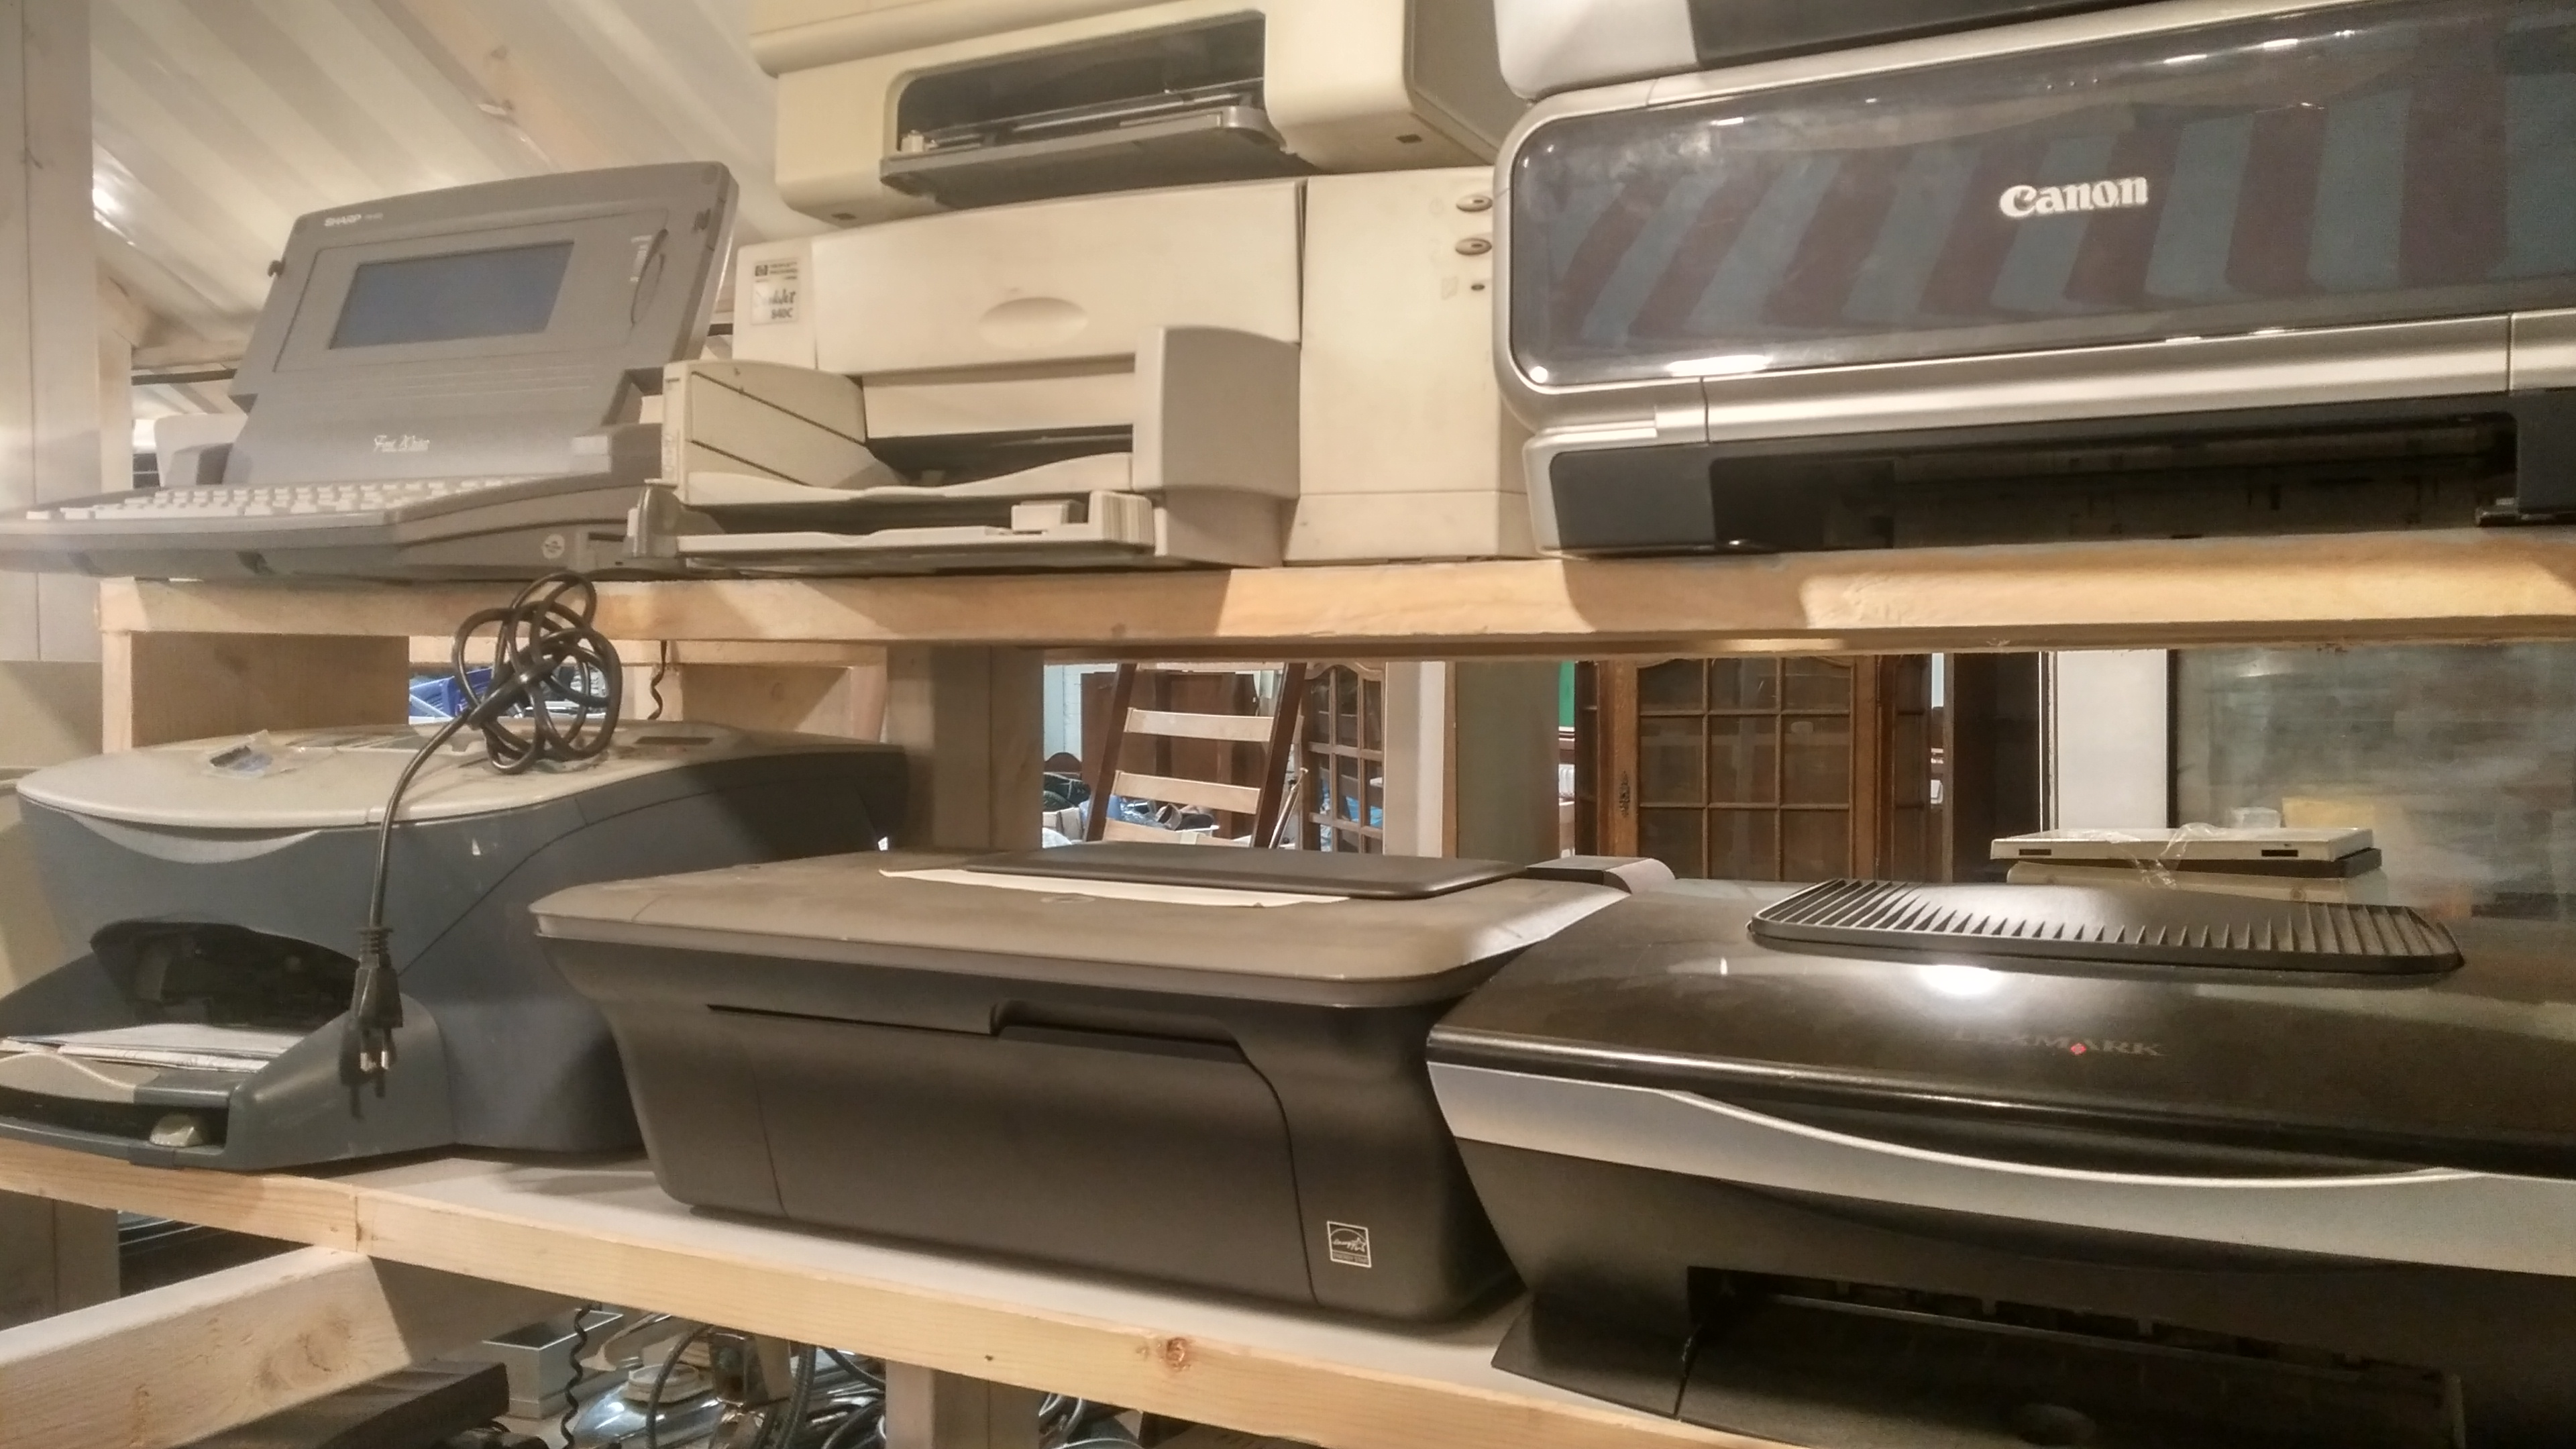 File:Second-hand electronics and accessories at Een Nieuwe Kans